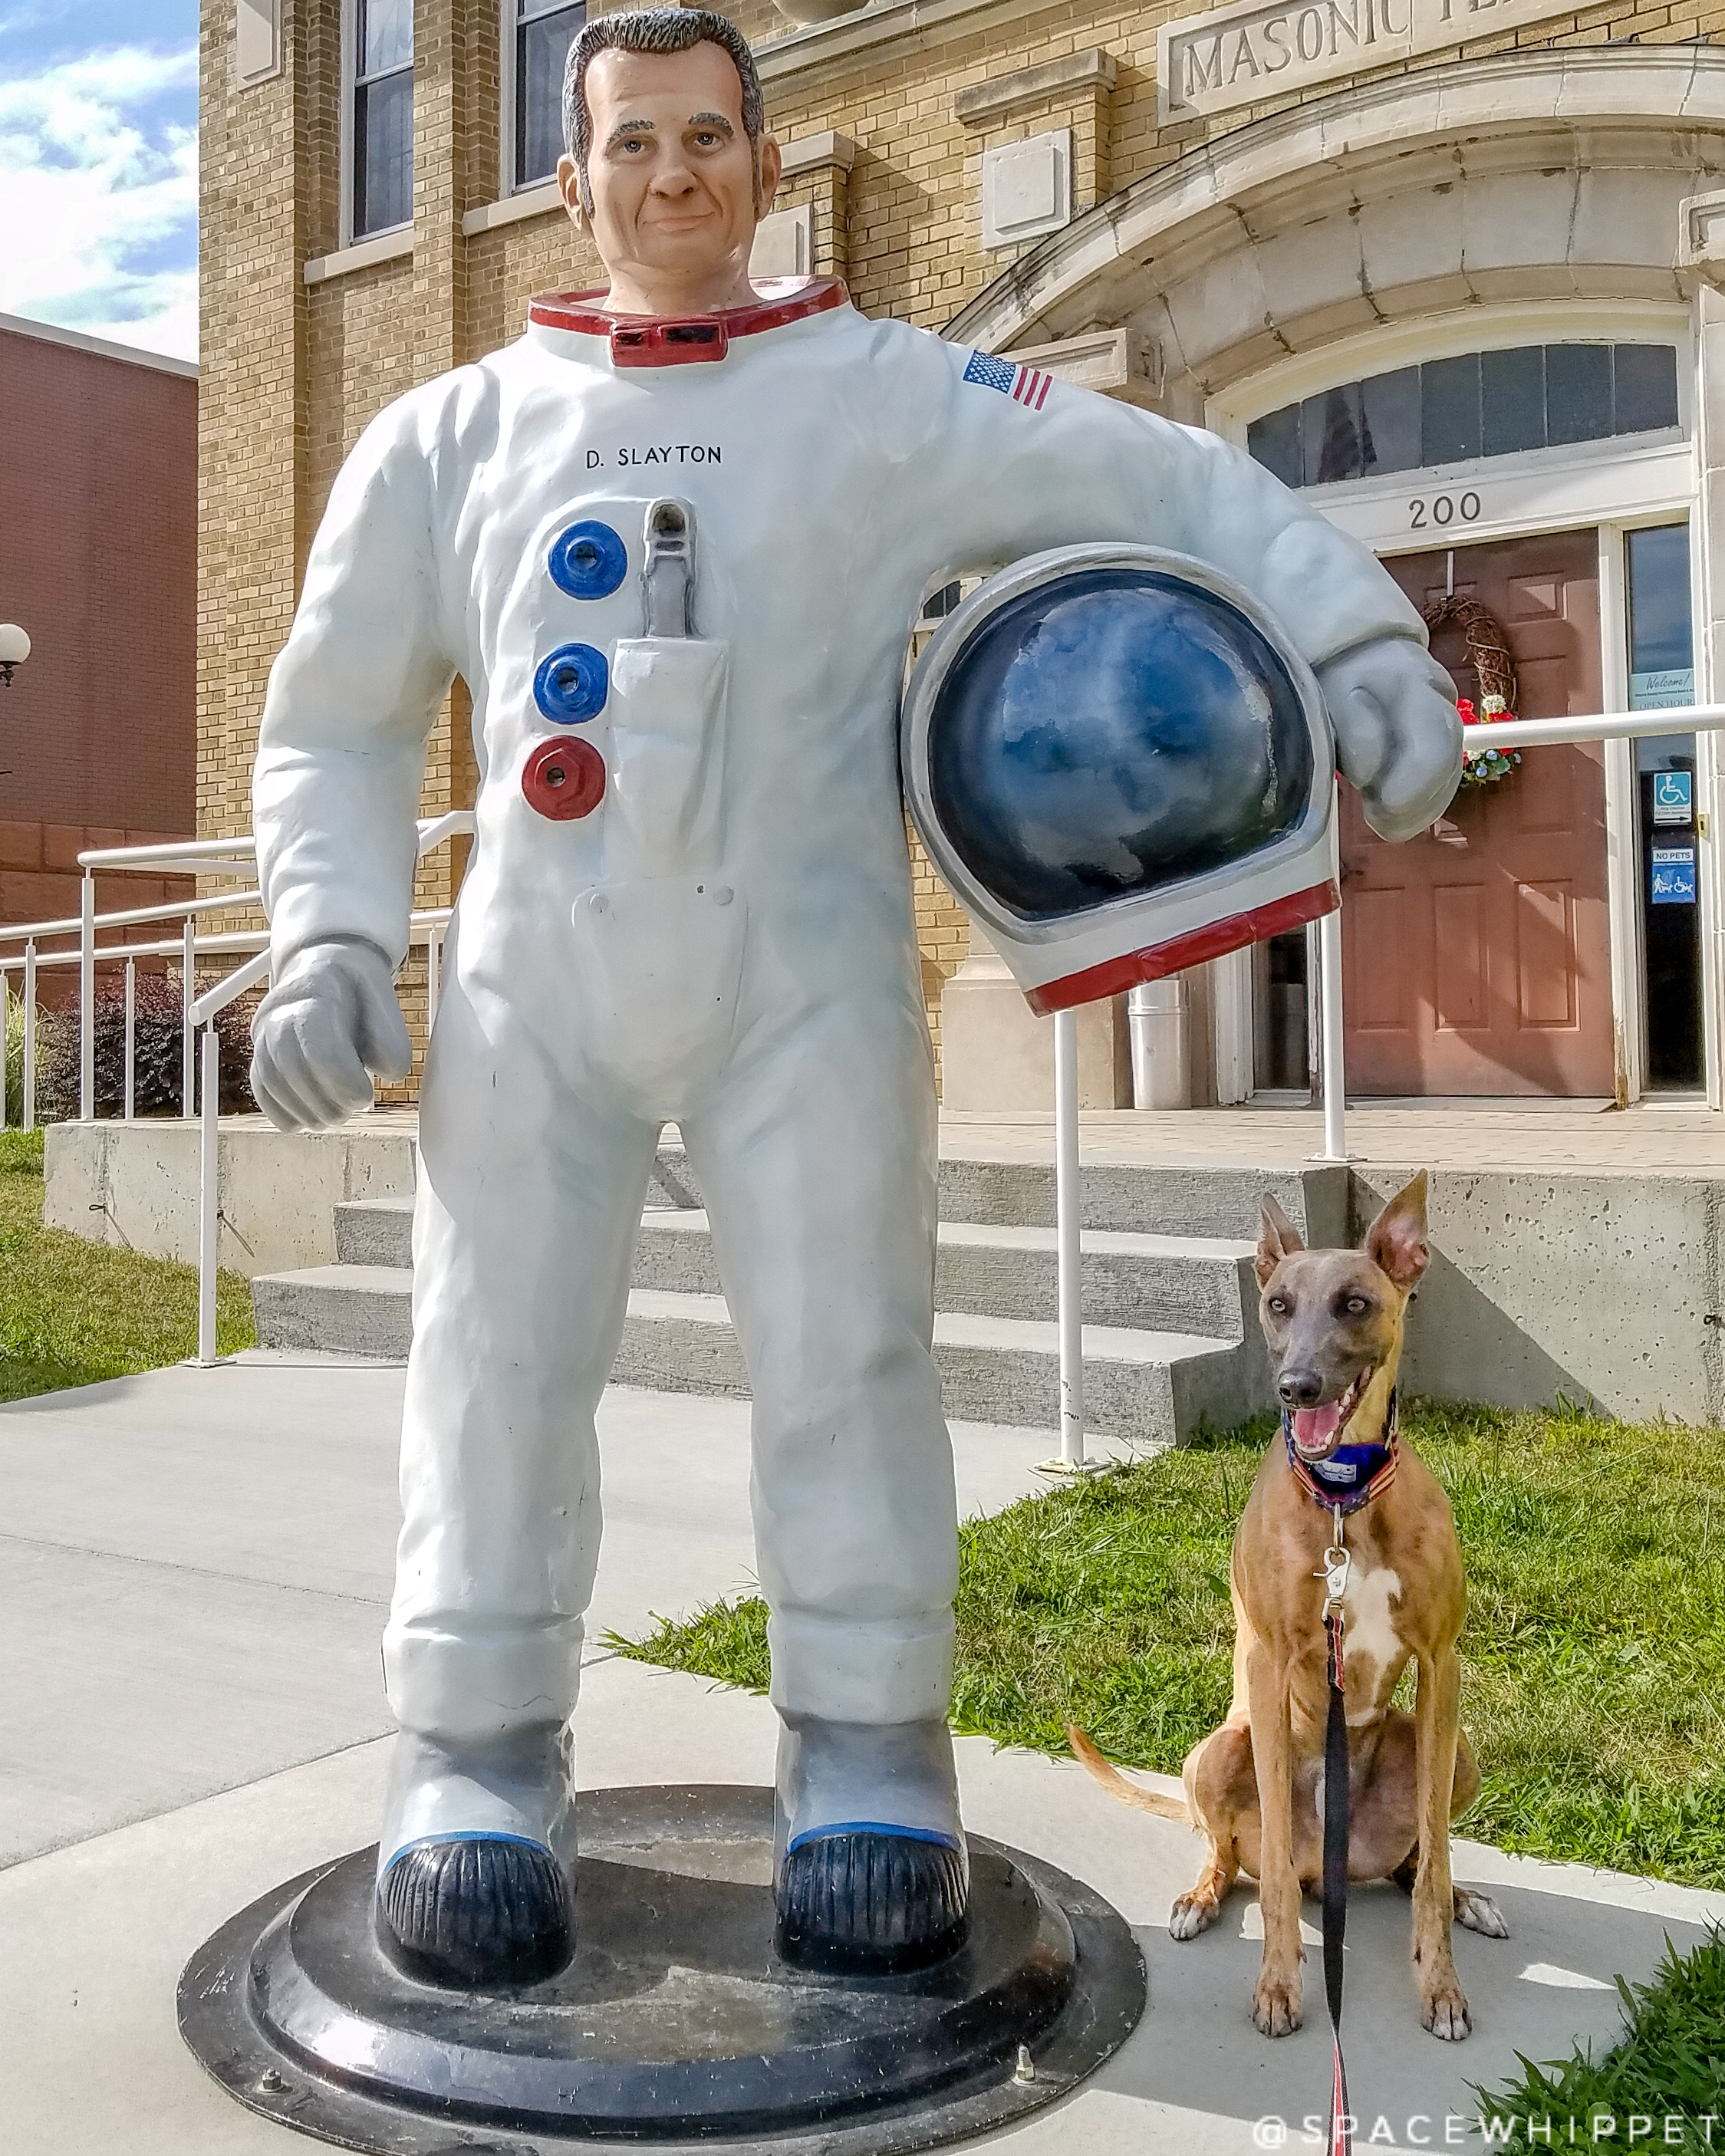 Kuiper poses with a statue of Deke Slayton in a spacesuit.